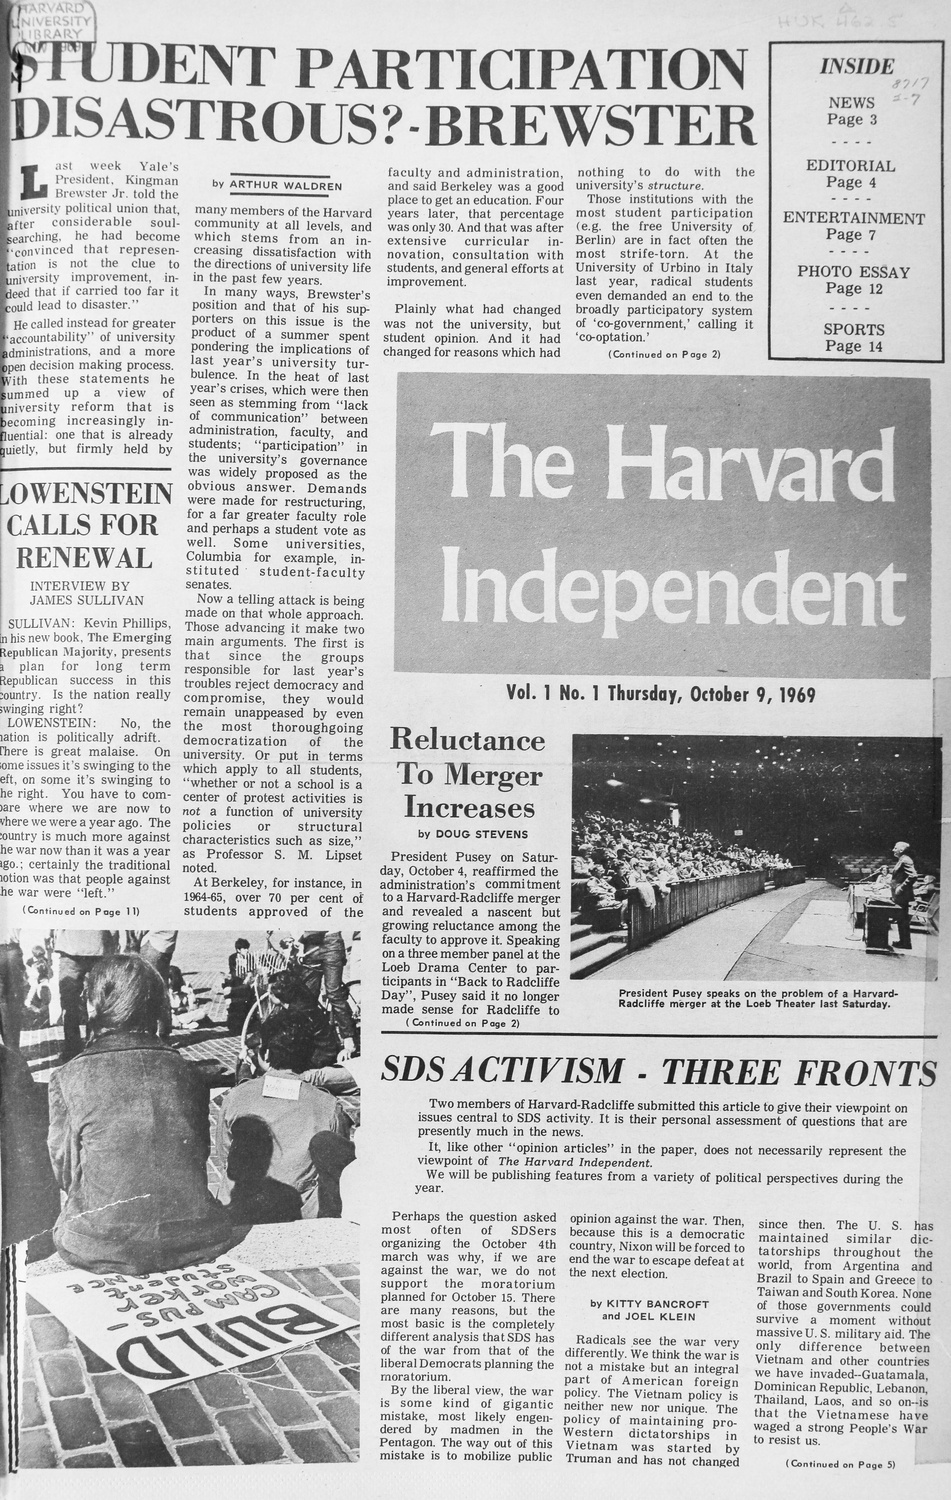 The first issue of the Harvard Independent, published in October 1969.